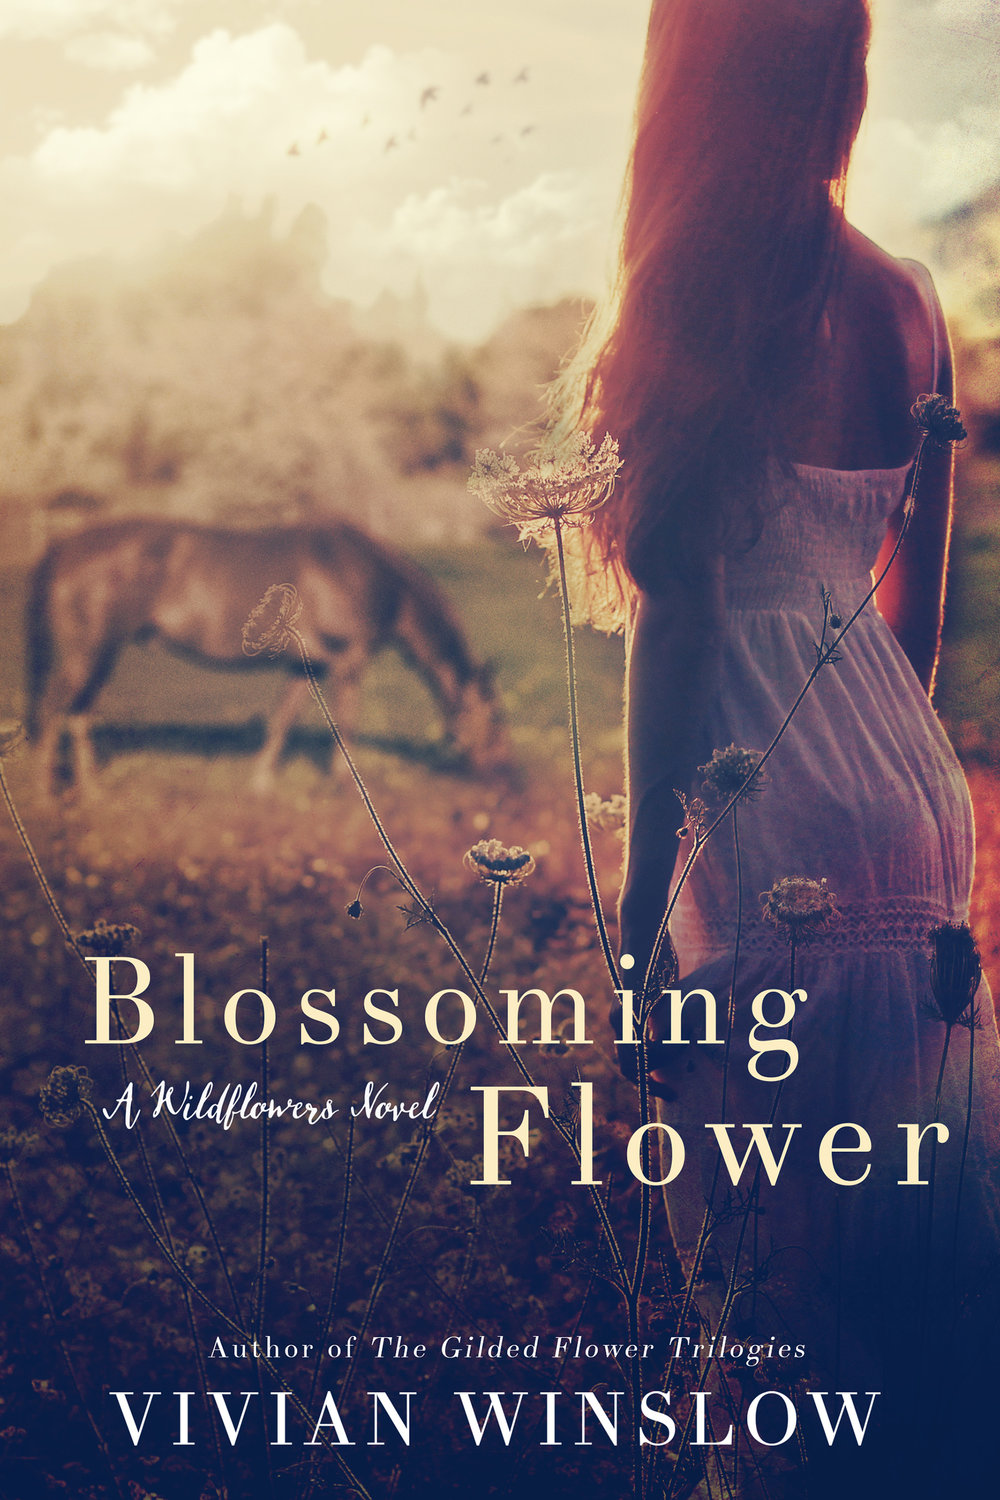 Blossoming Flower